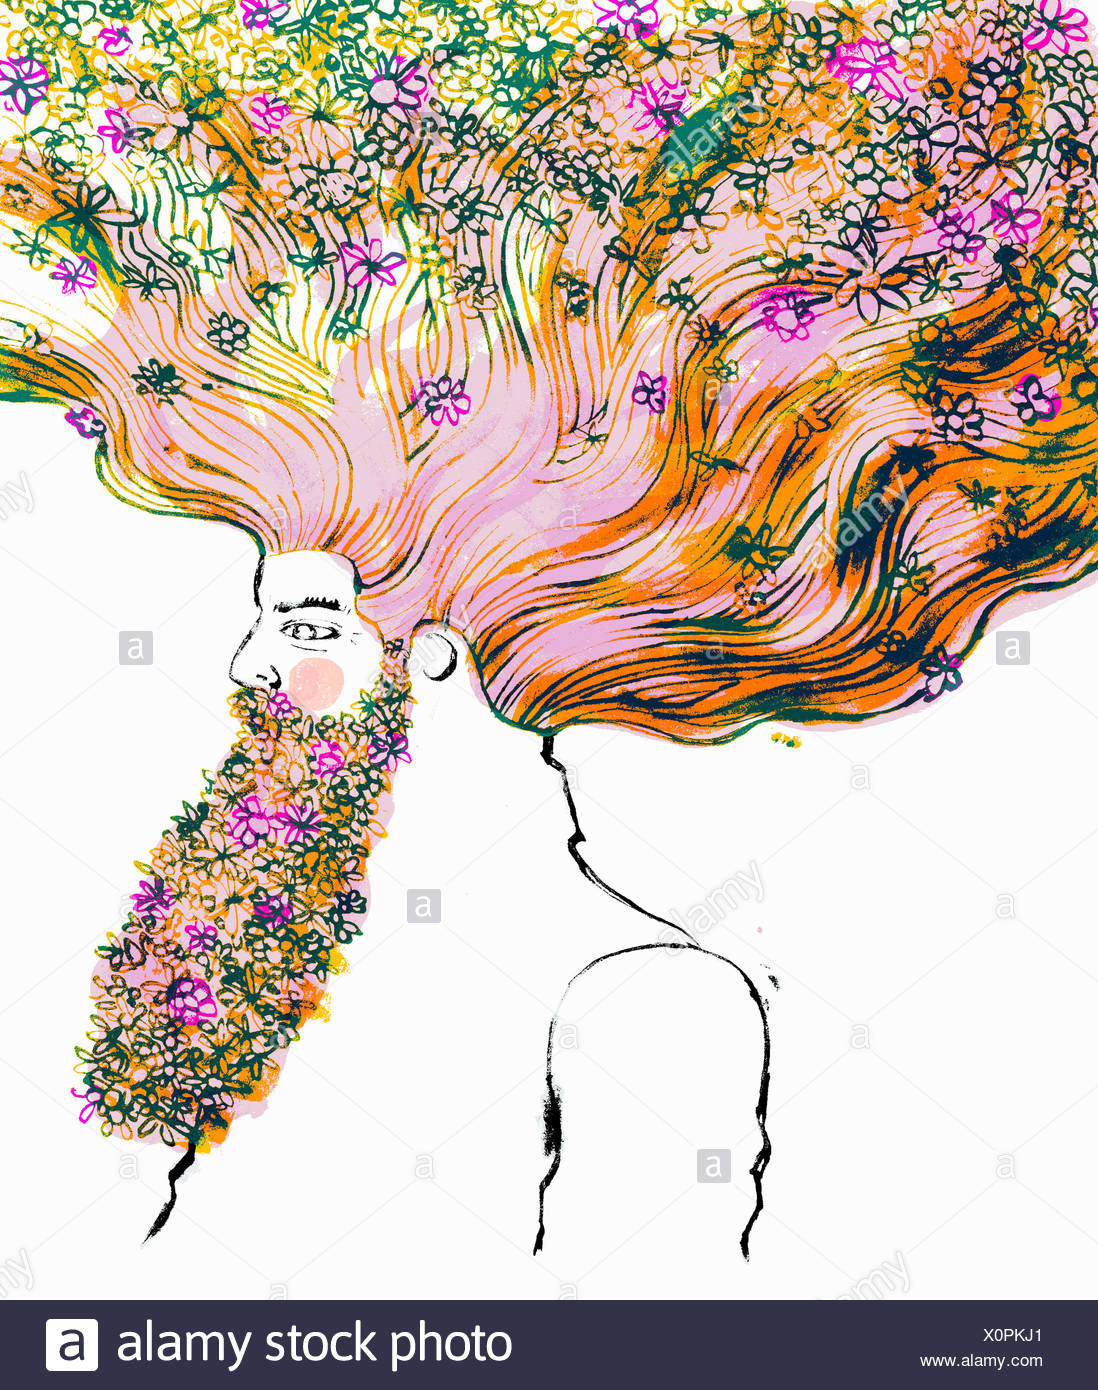 Man with flowing red hair and beard full of flowers - Stock Image